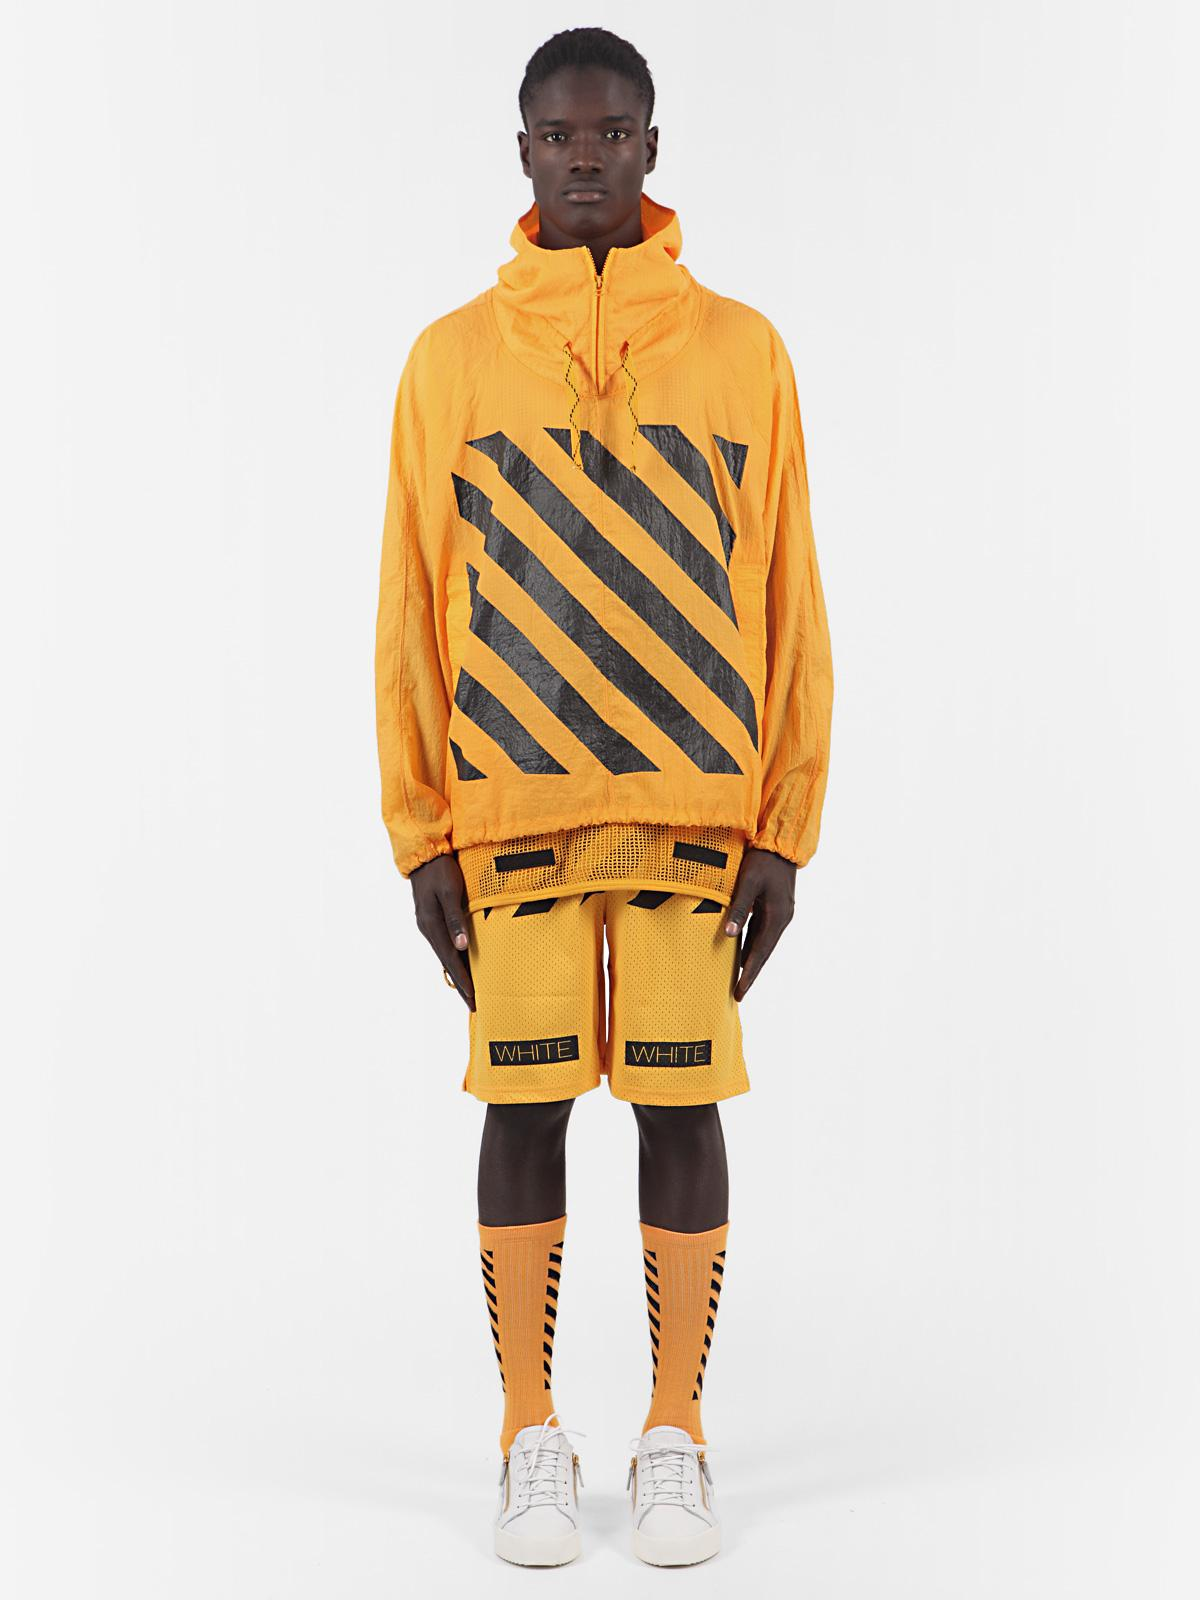 A dark-skinned model stands rigidly while wearing a rich yellow outfit of a striped hoodie, long shorts, and high striped socks with white sneakers.